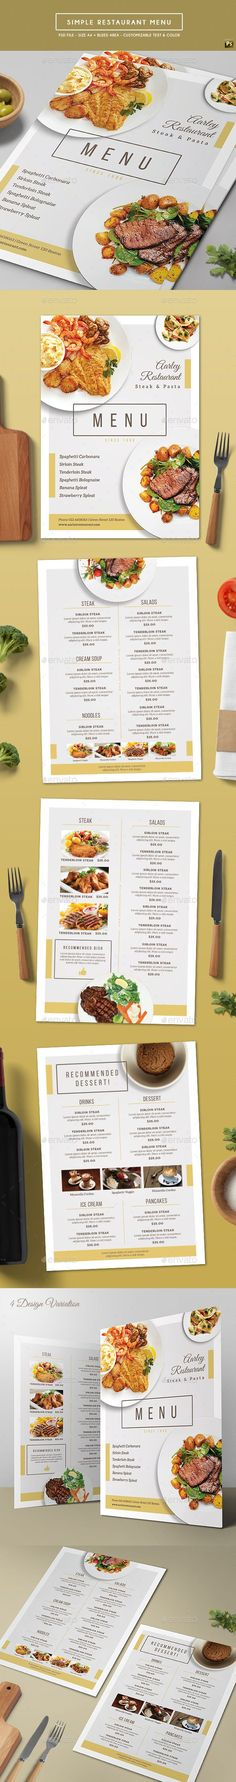 Is there a science to developing restaurant menus to sway your consumers' purchasing choices? Here's 6 menu style software for restaurants. Menu Restaurant, Restaurant Menu Template, Restaurant Recipes, Restaurant Design, Corporate Design, Corporate Branding, Branding Design, Layout Print, Menu Layout